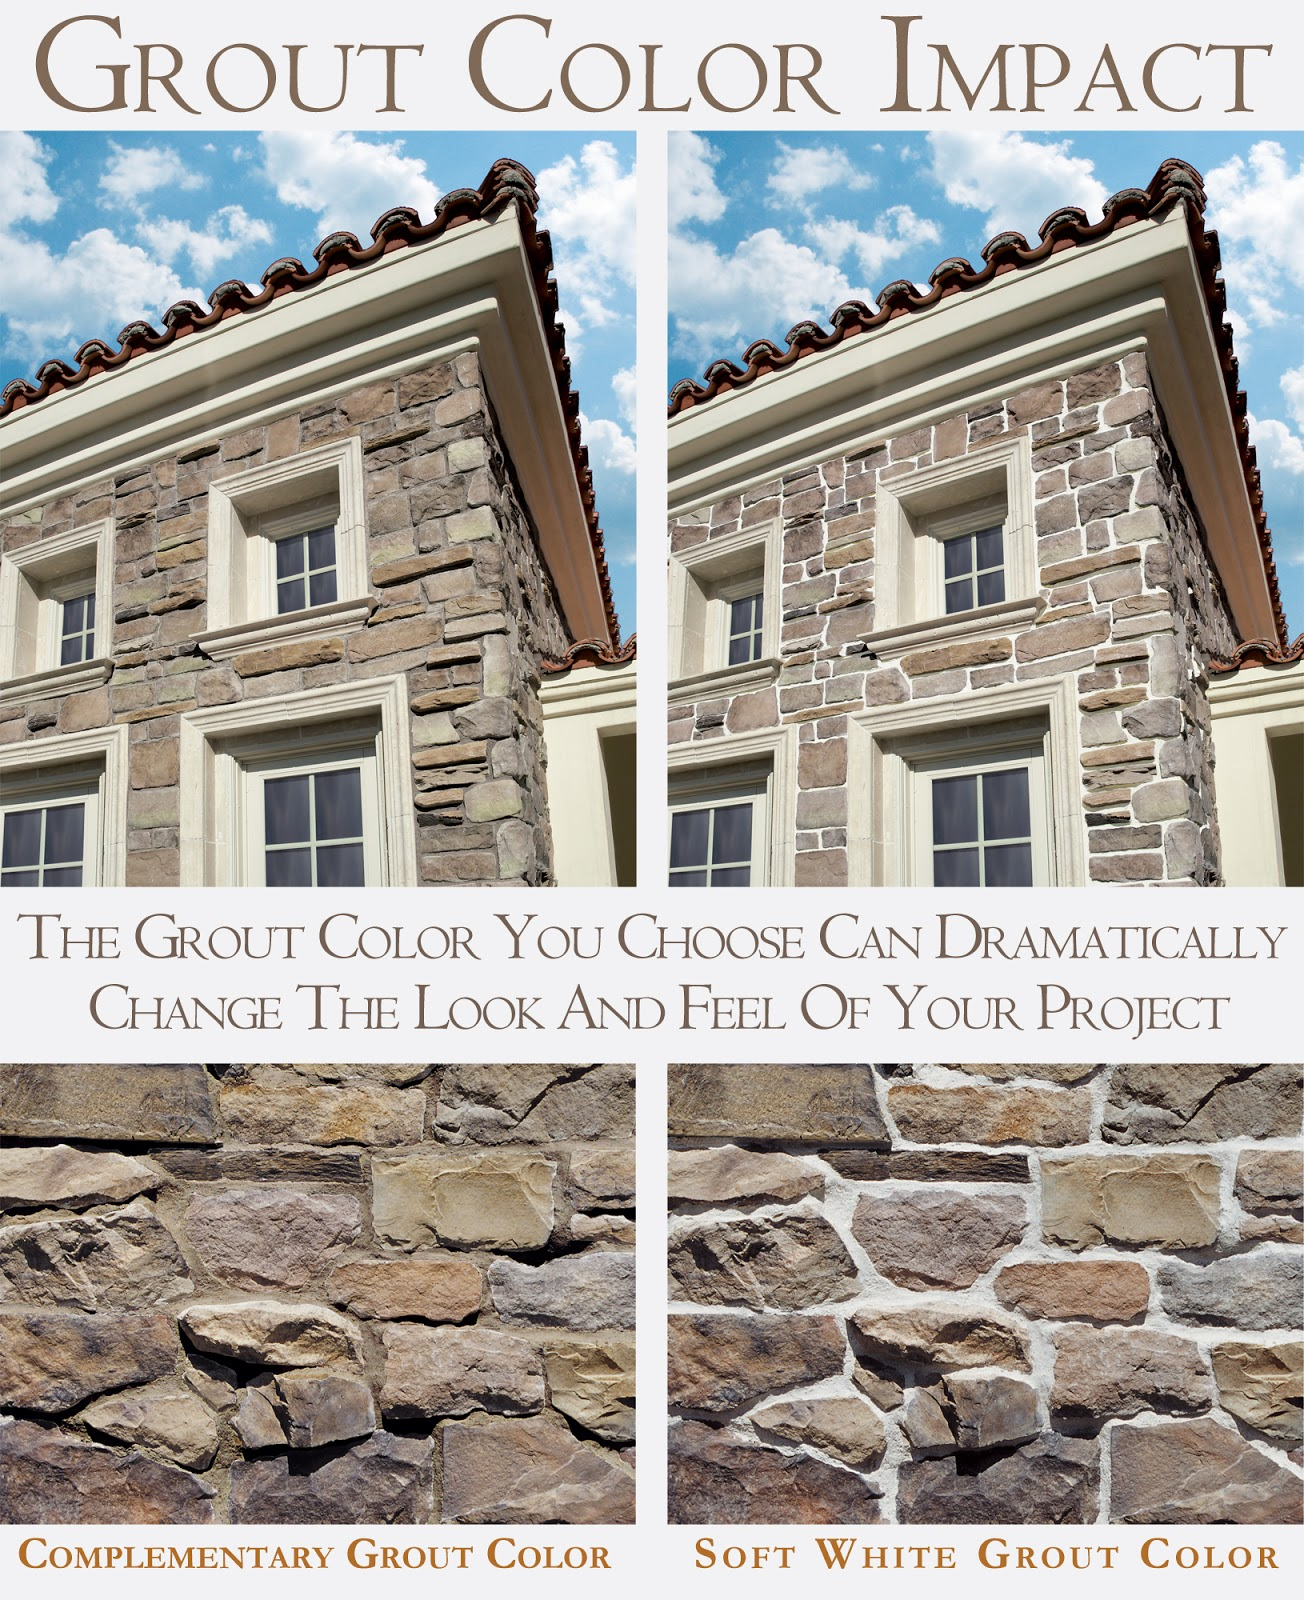 Grout for stone: properties and types